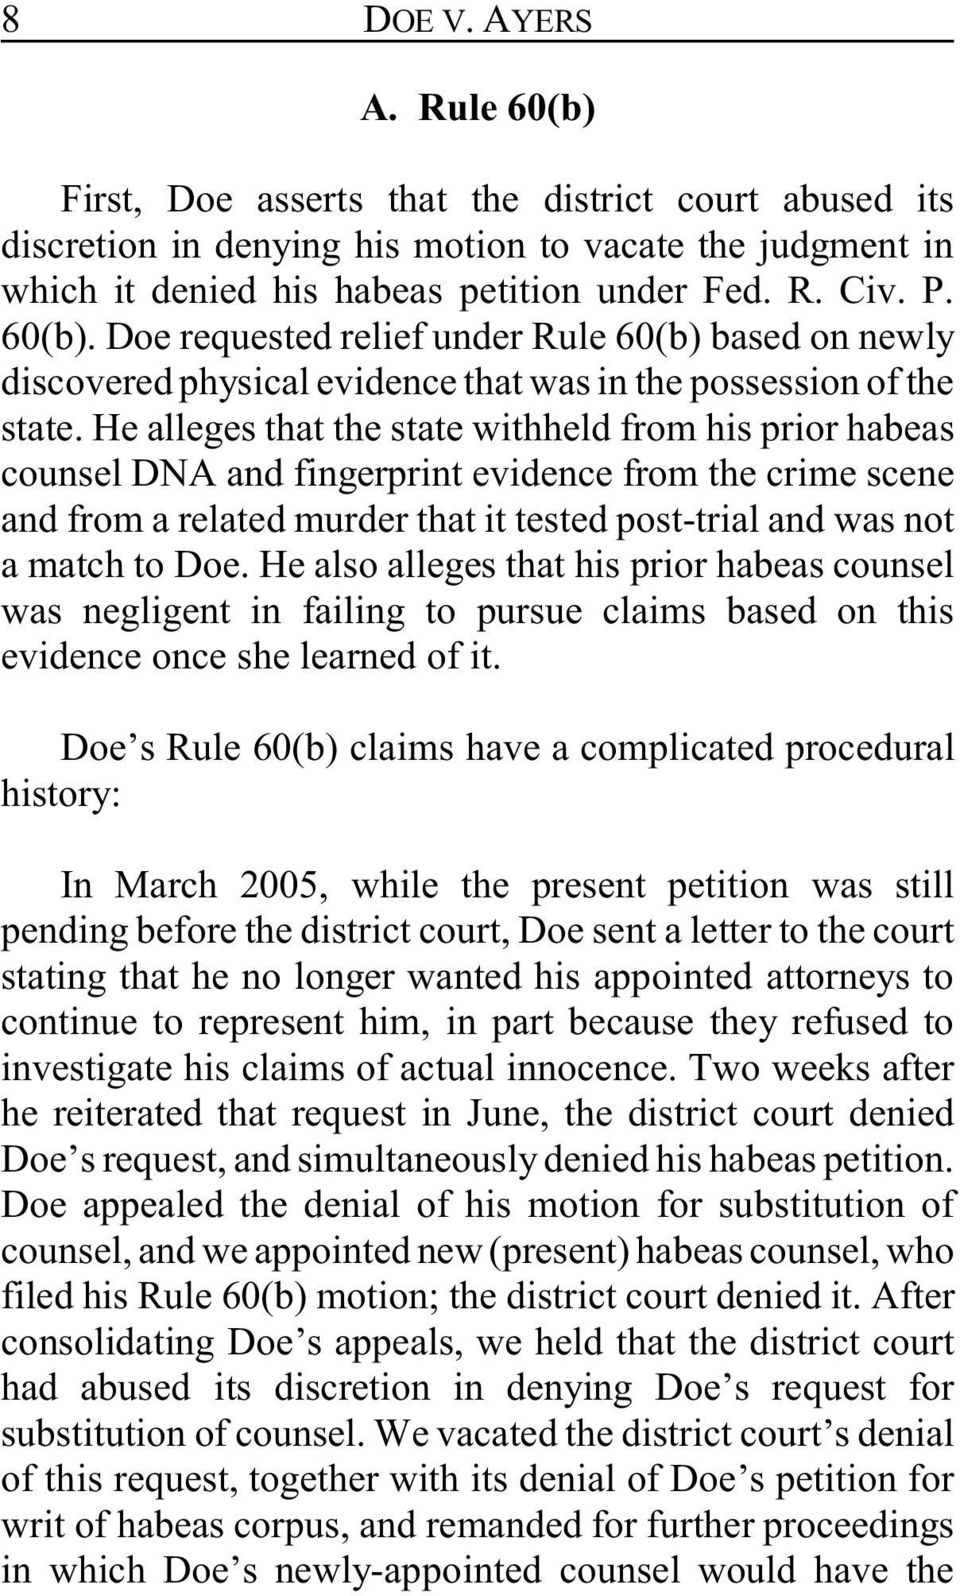 He alleges that the state withheld from his prior habeas counsel DNA and fingerprint evidence from the crime scene and from a related murder that it tested post-trial and was not a match to Doe.